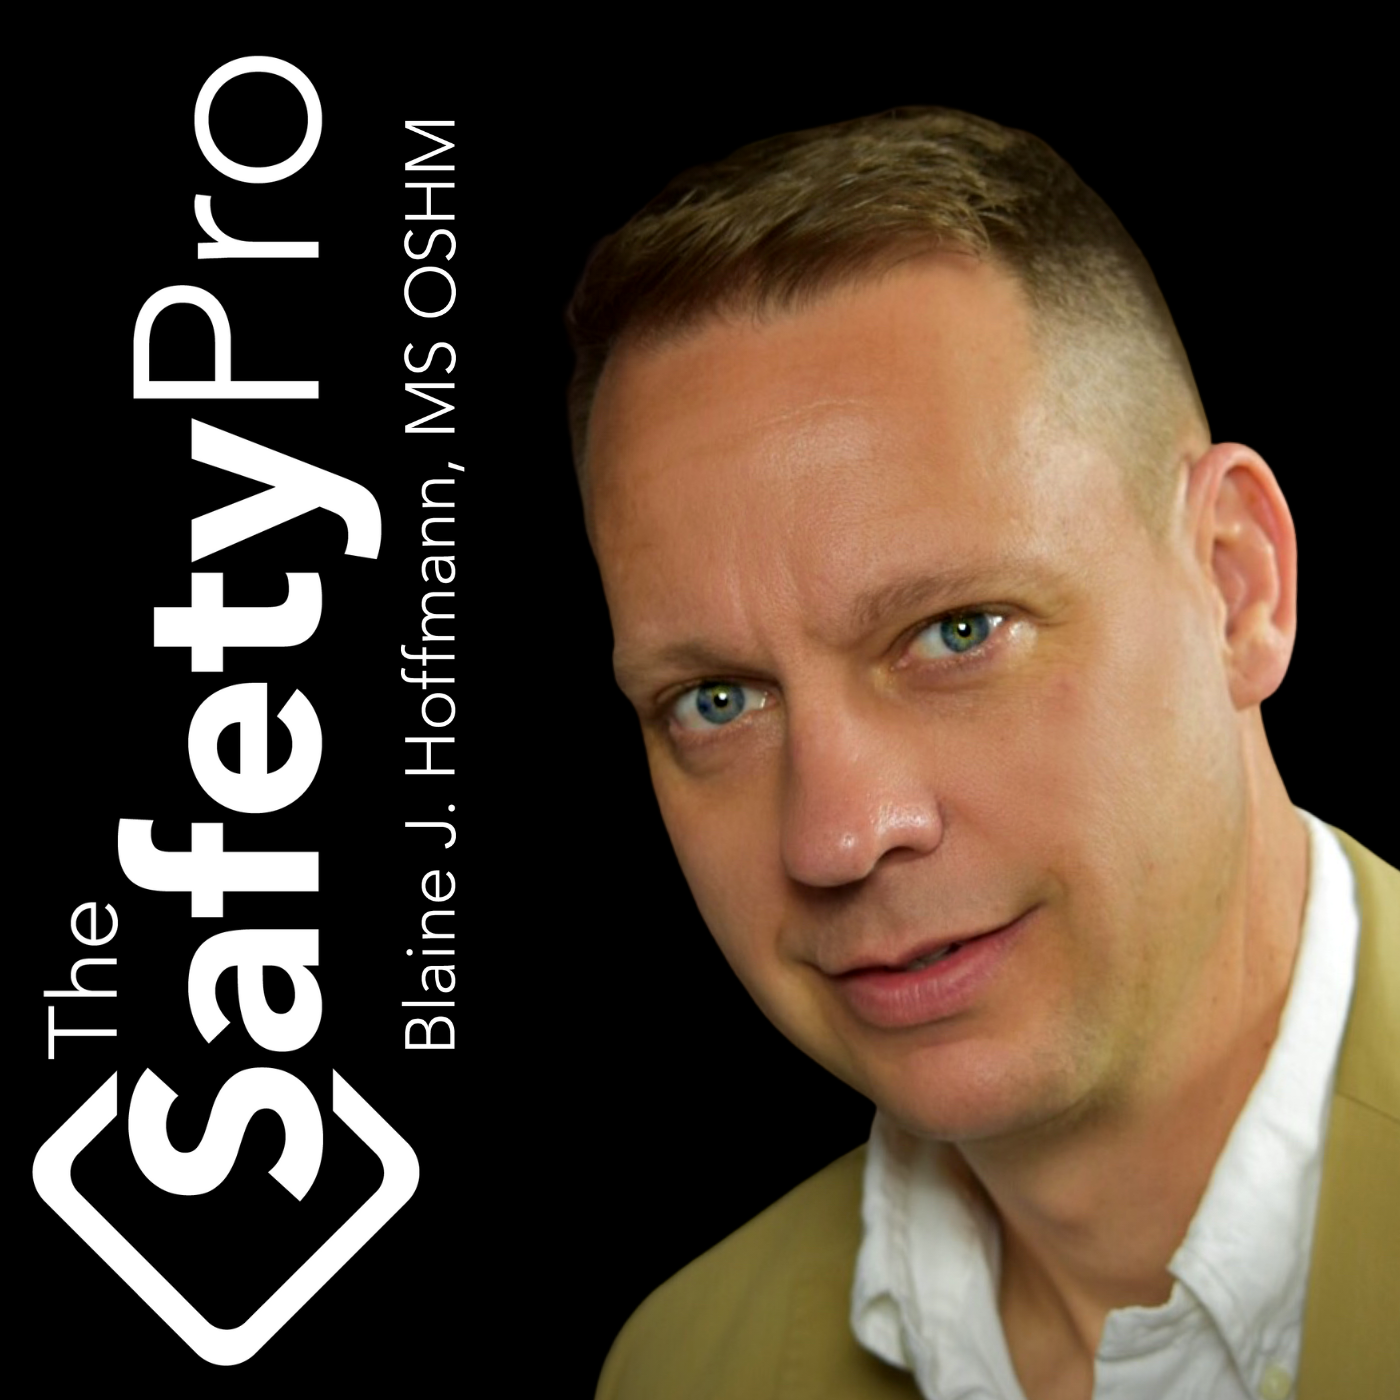 The SafetyPro Podcast - Helping you manage workplace safety one episode at a time!